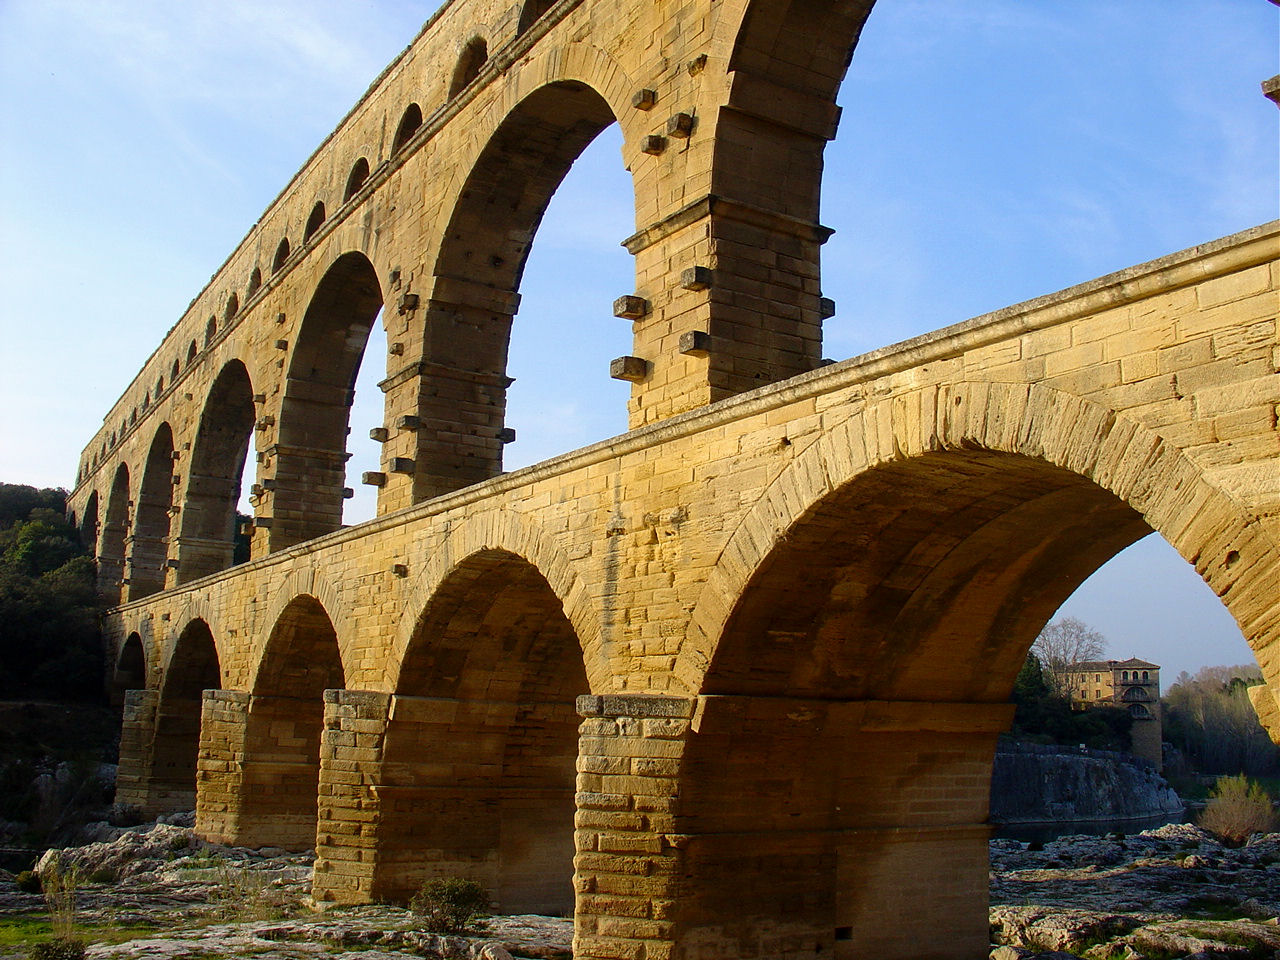 Le Pont du Gard at sunset.